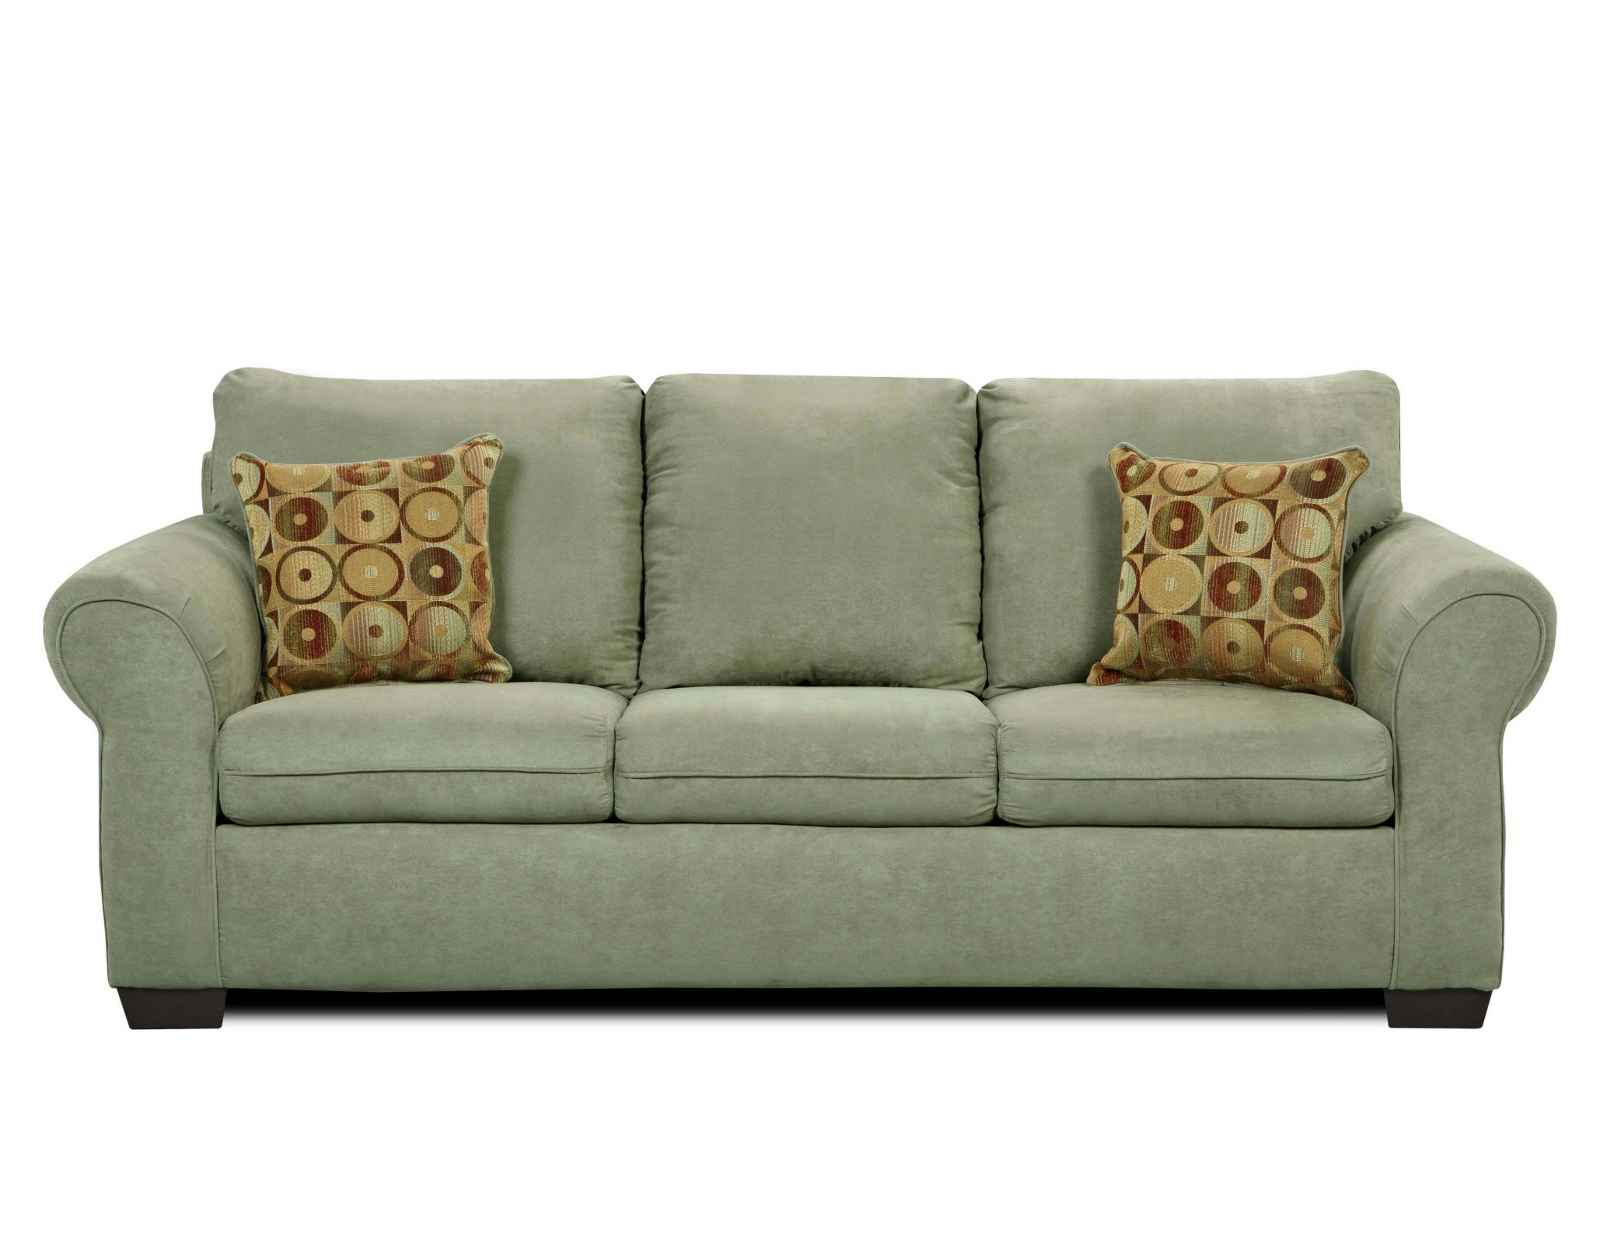 Cheap sofa and loveseat sets feel the home for Sofa set for sale cheap